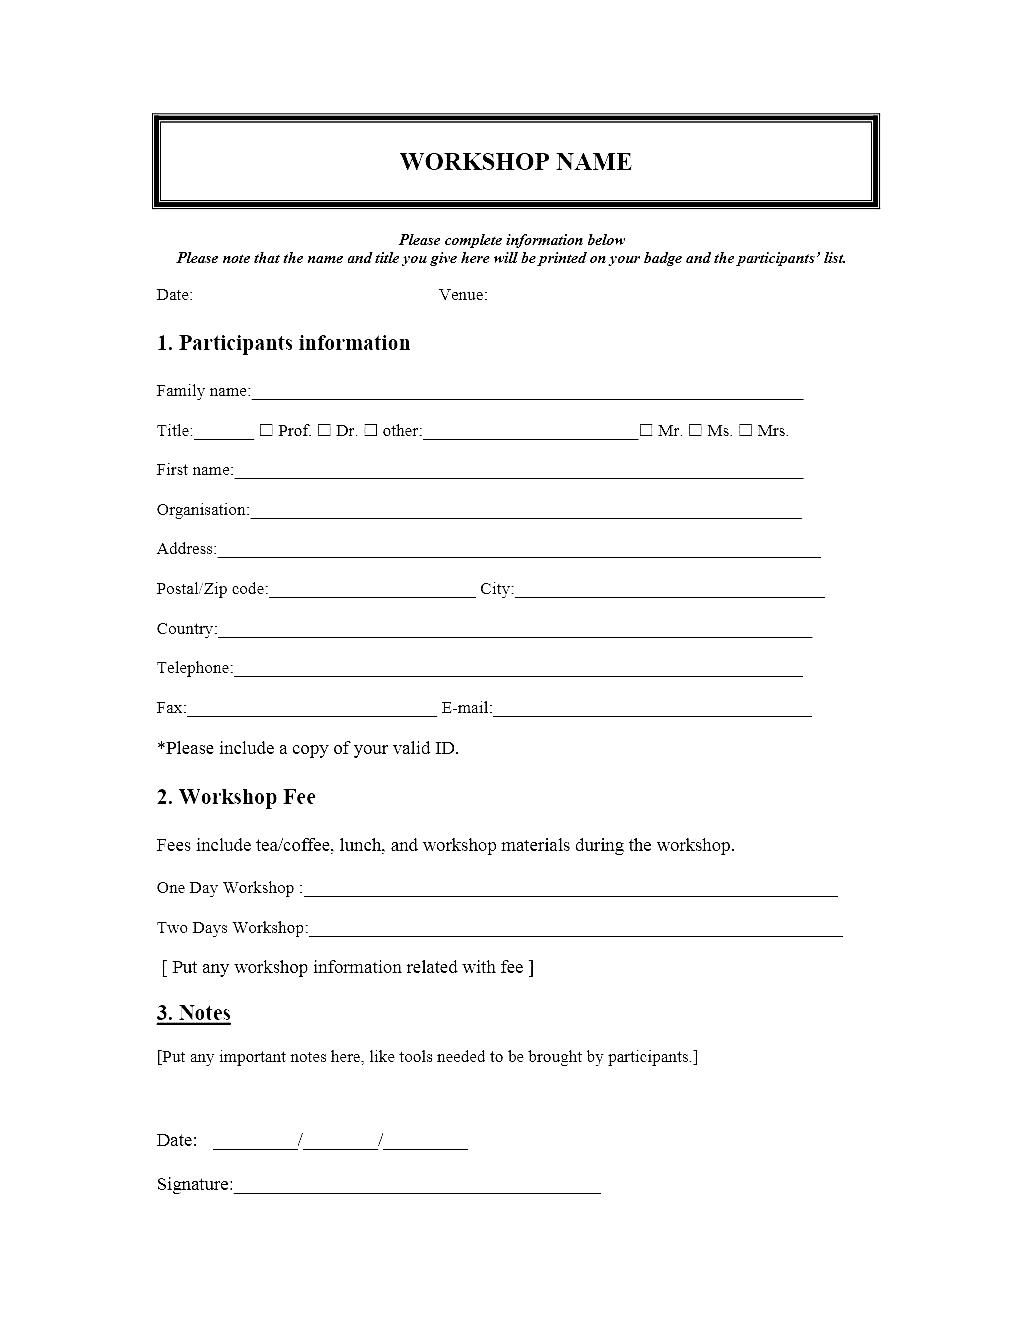 Event registration form template microsoft word for Course enrolment form template